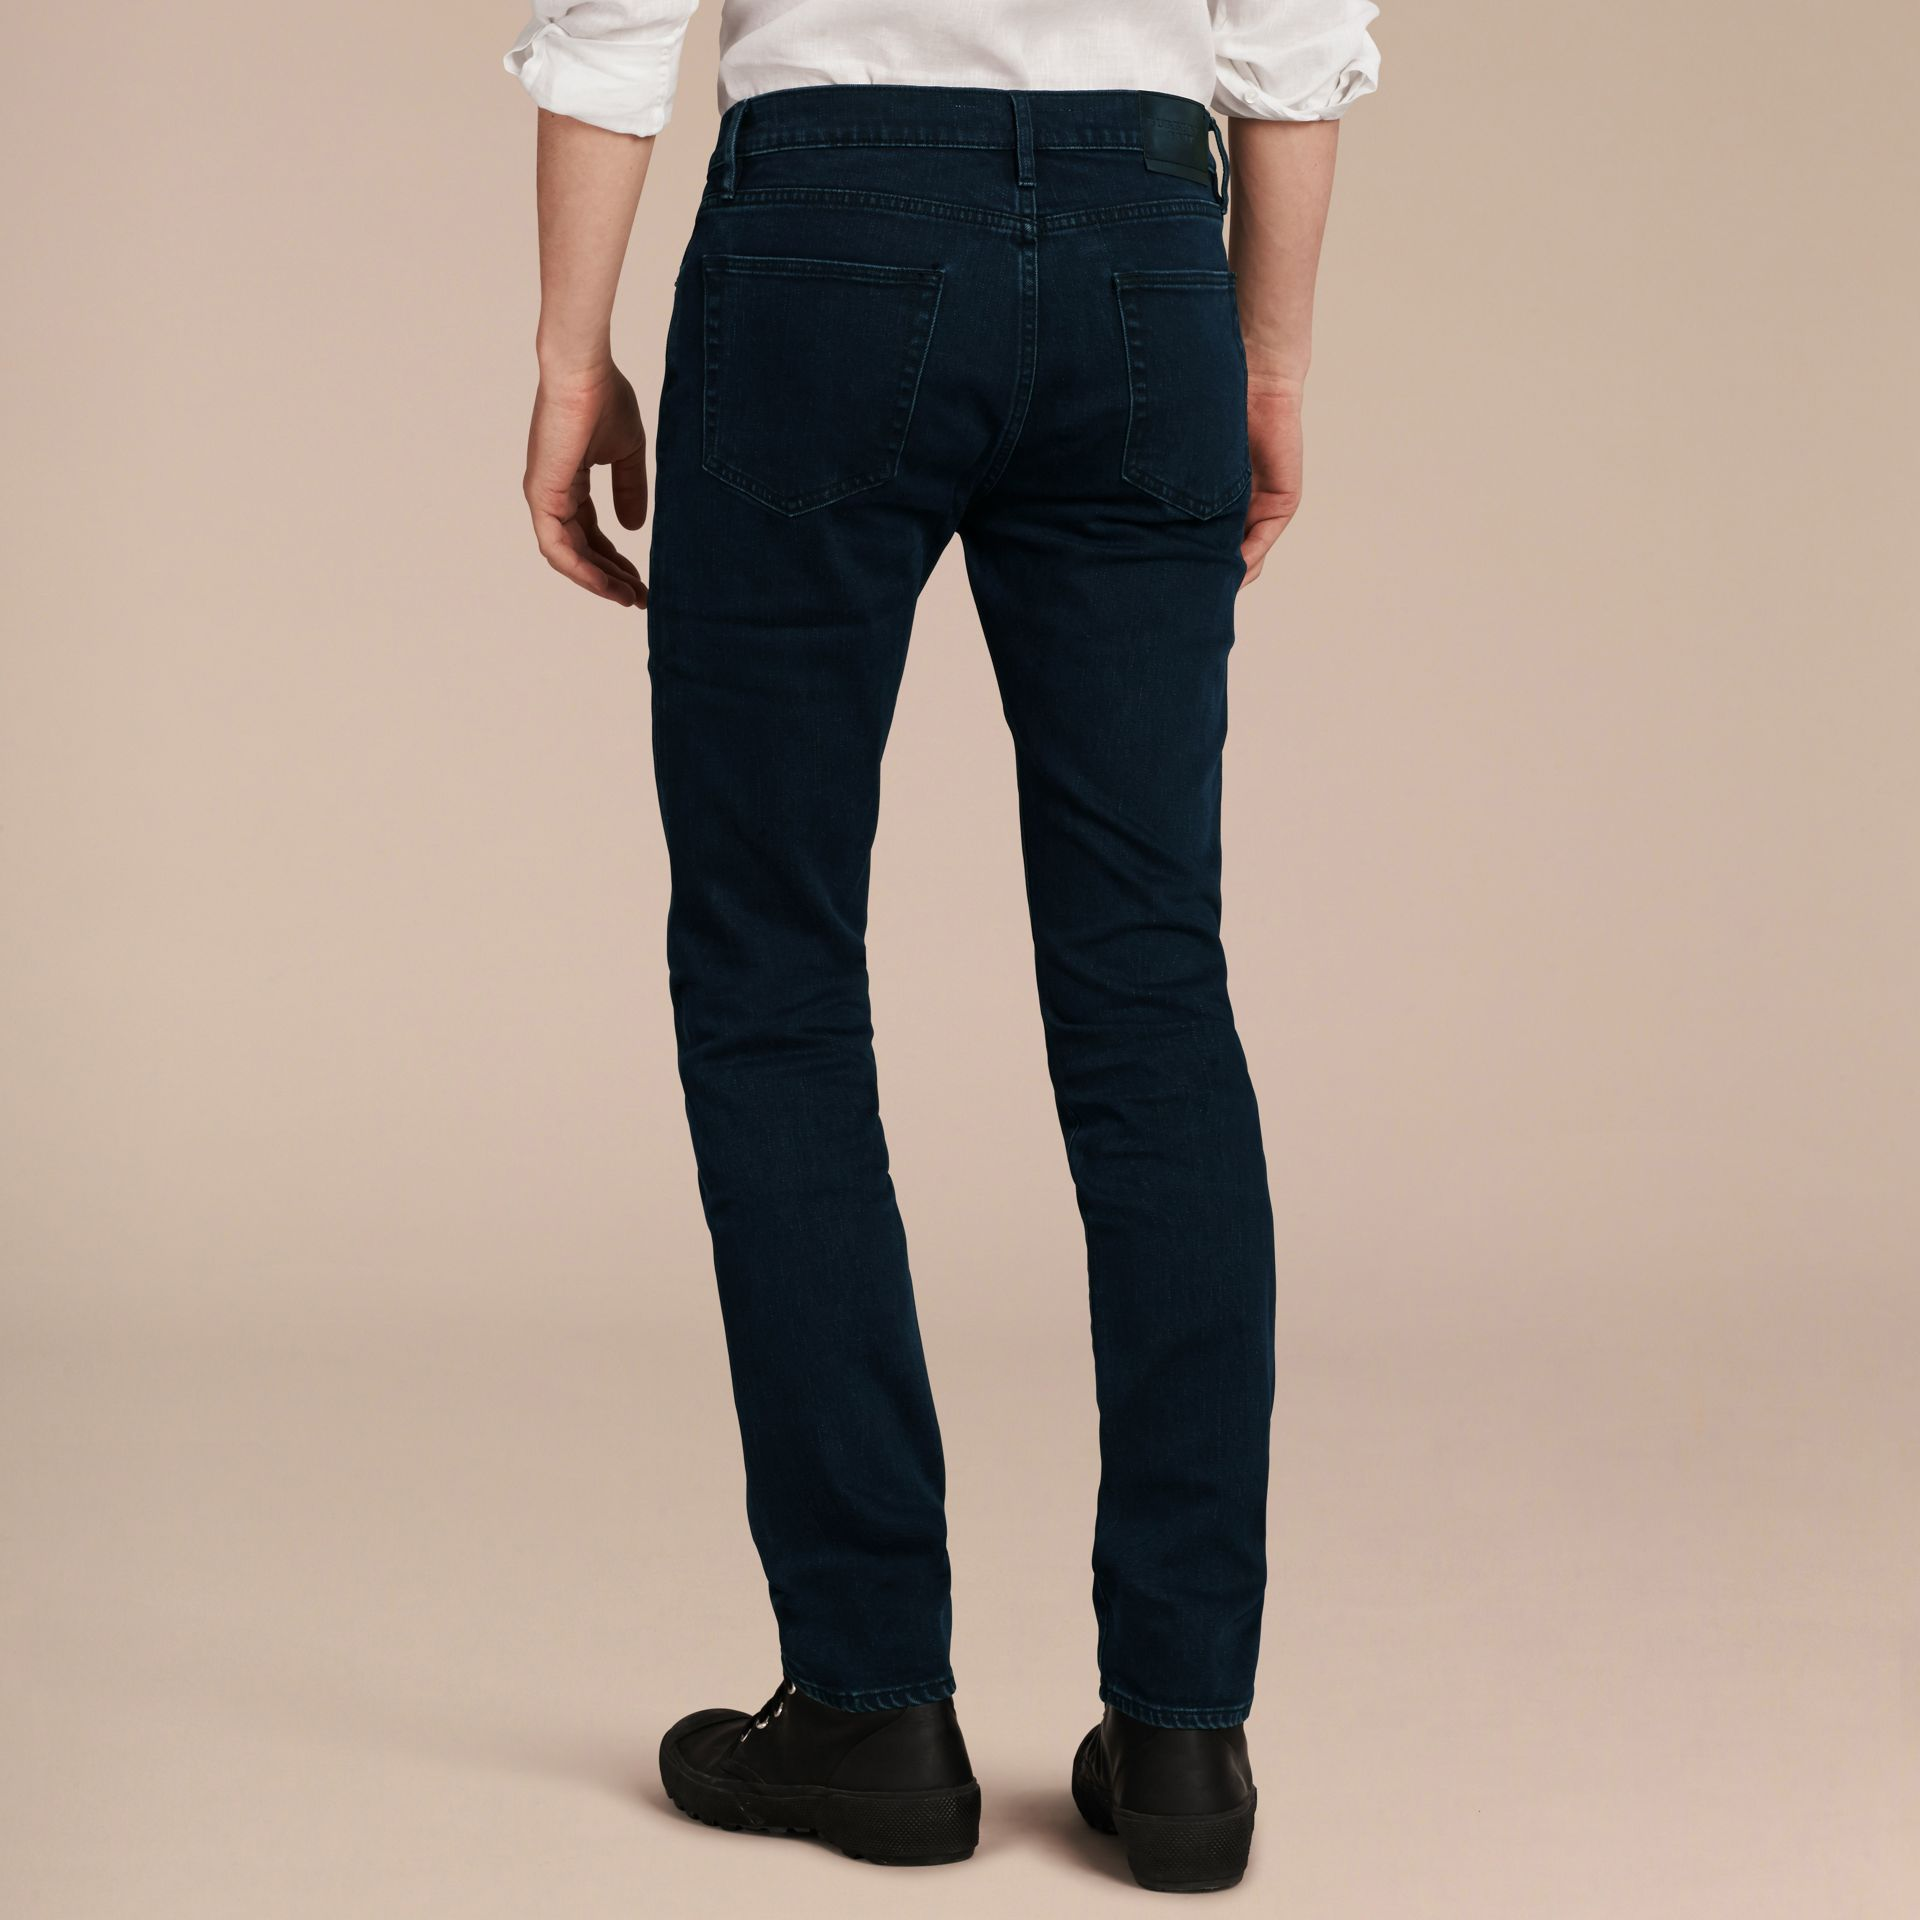 Jean de coupe slim stretch surteint - photo de la galerie 3